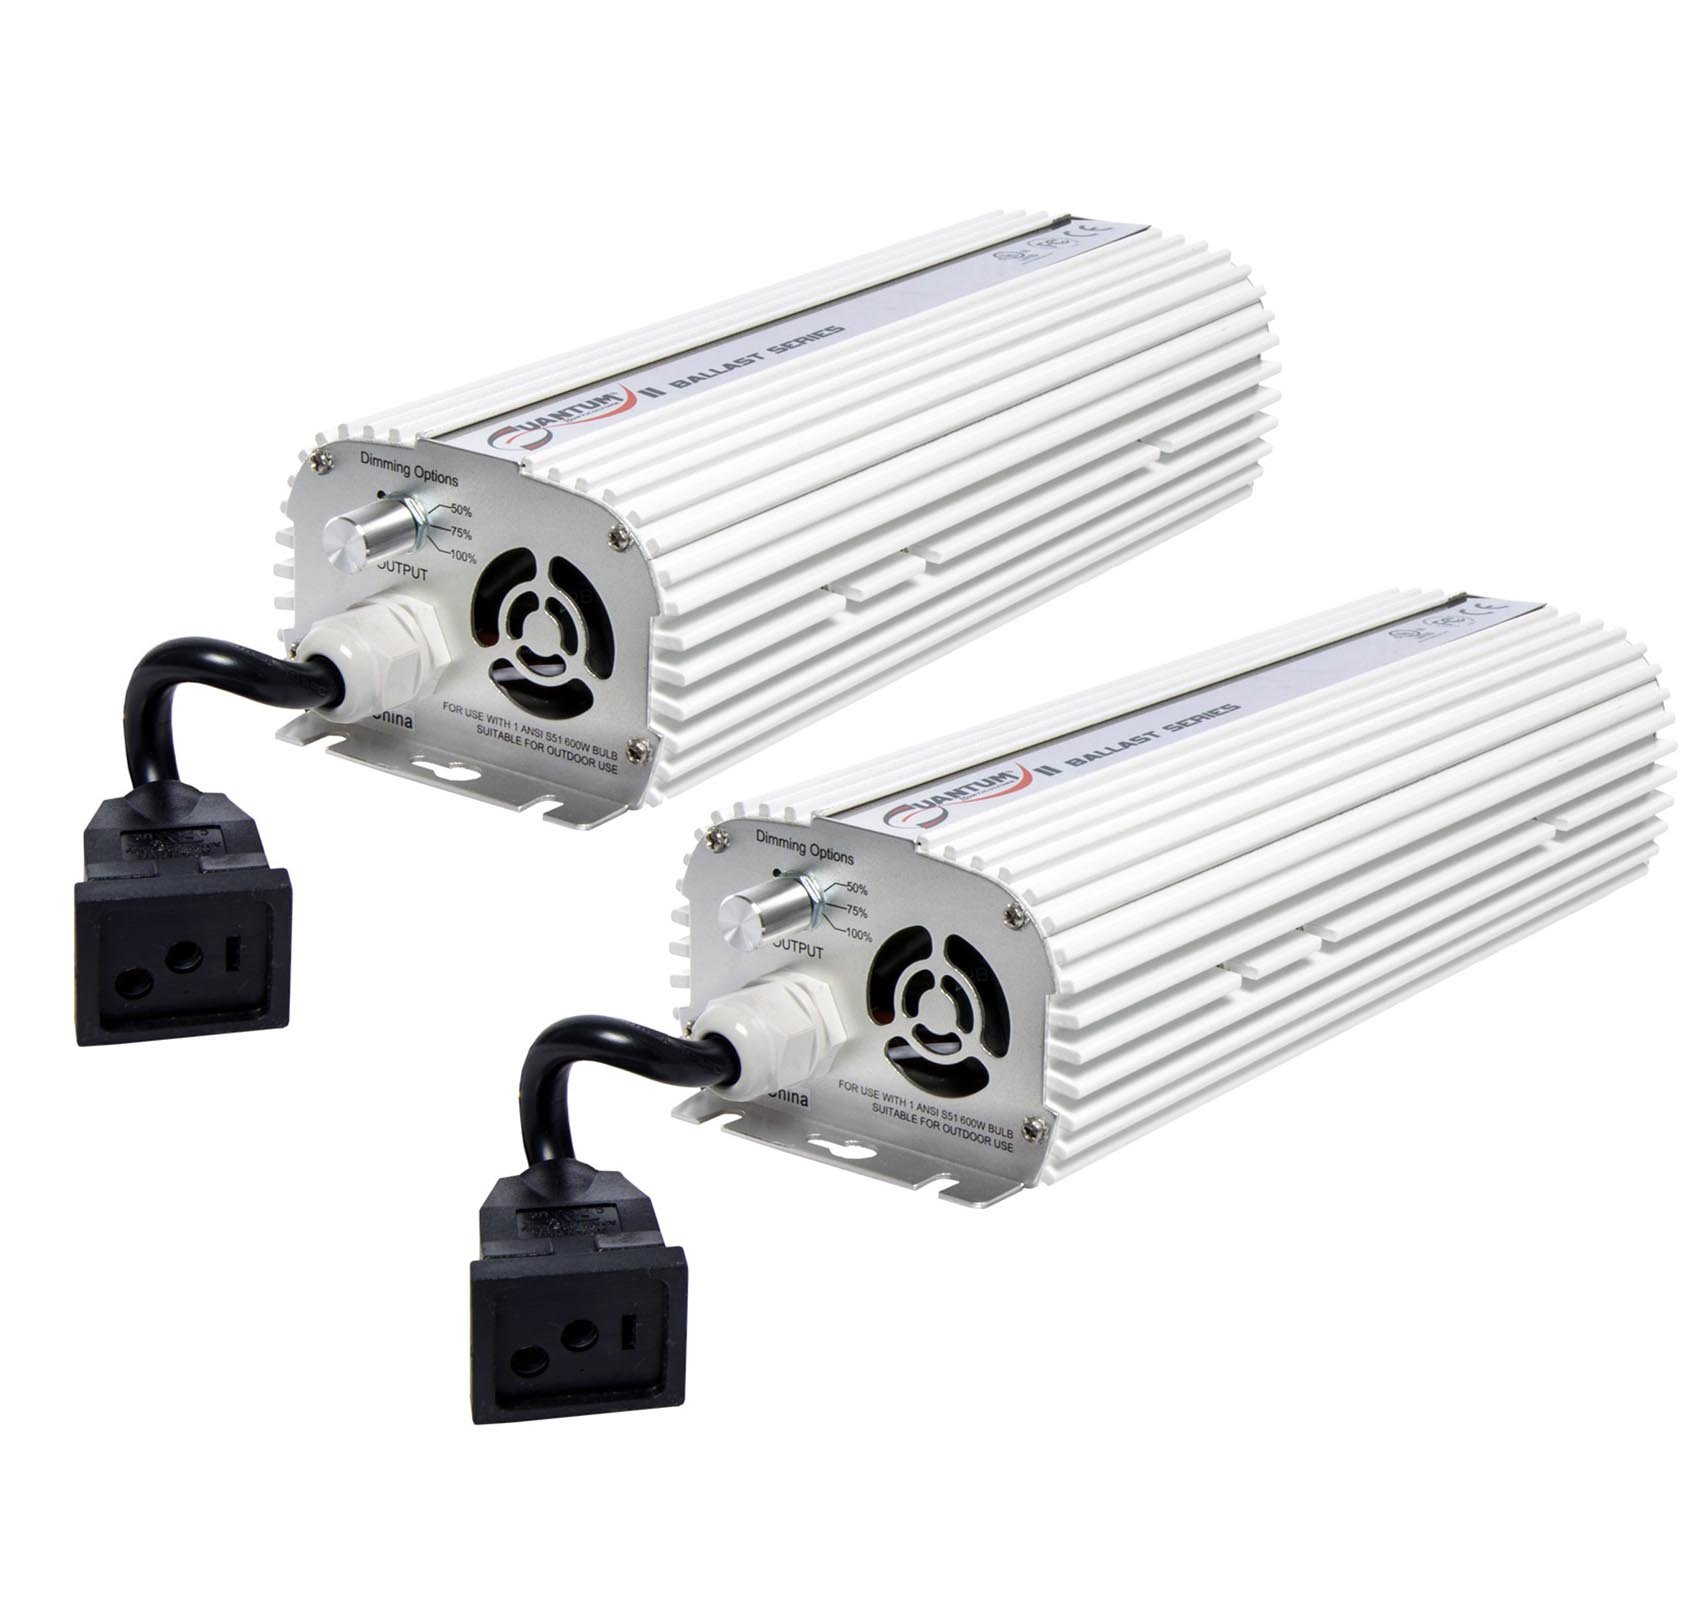 (2) QUANTUM 600W Watt HPS & MH Dimmable Digital Grow Light Lamp Ballasts | QT600